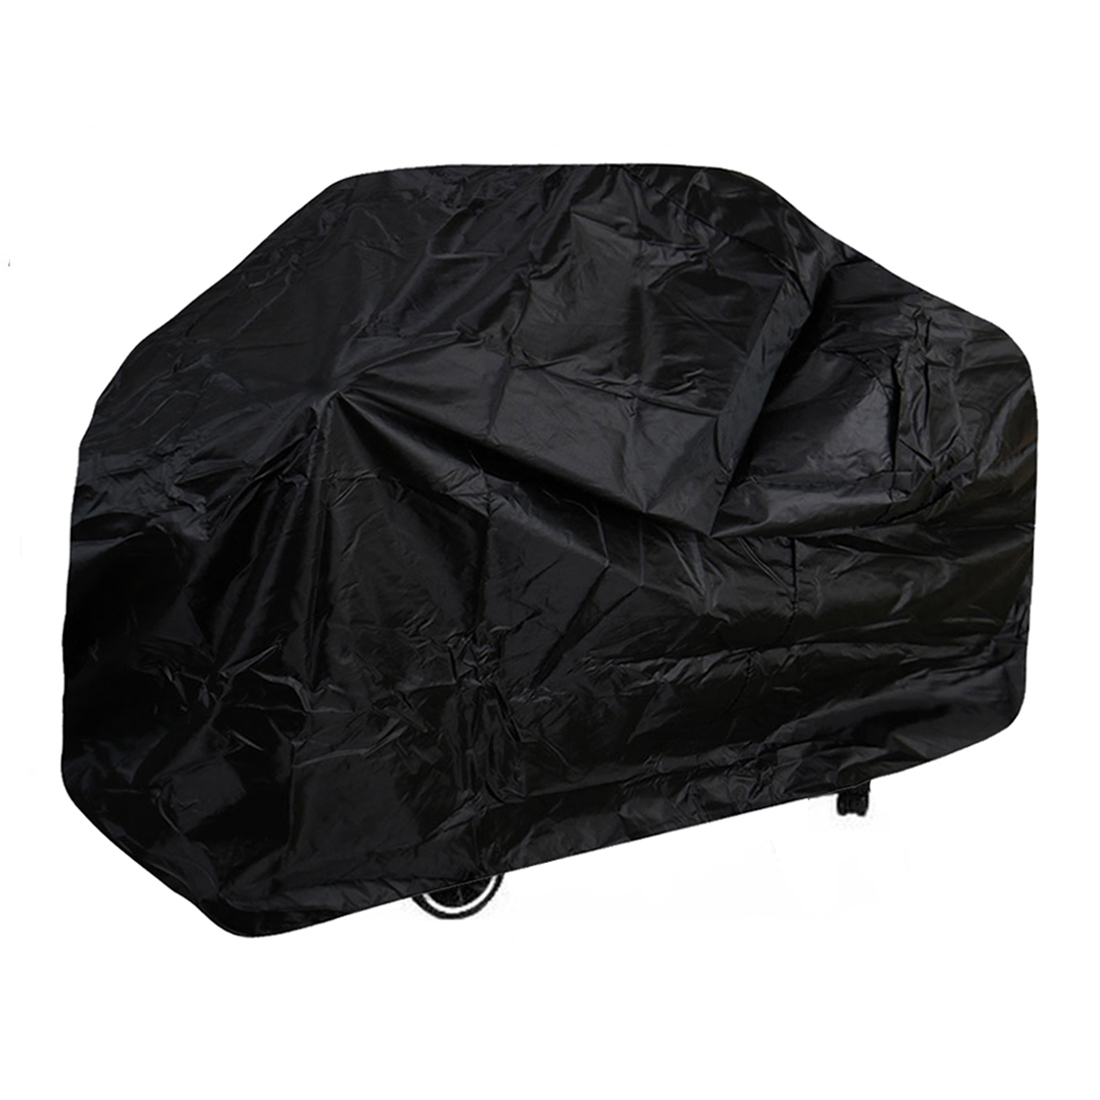 BBQ Cover Water Snow Dust Resistant Barbeque Grill Protector Outdoor Black S